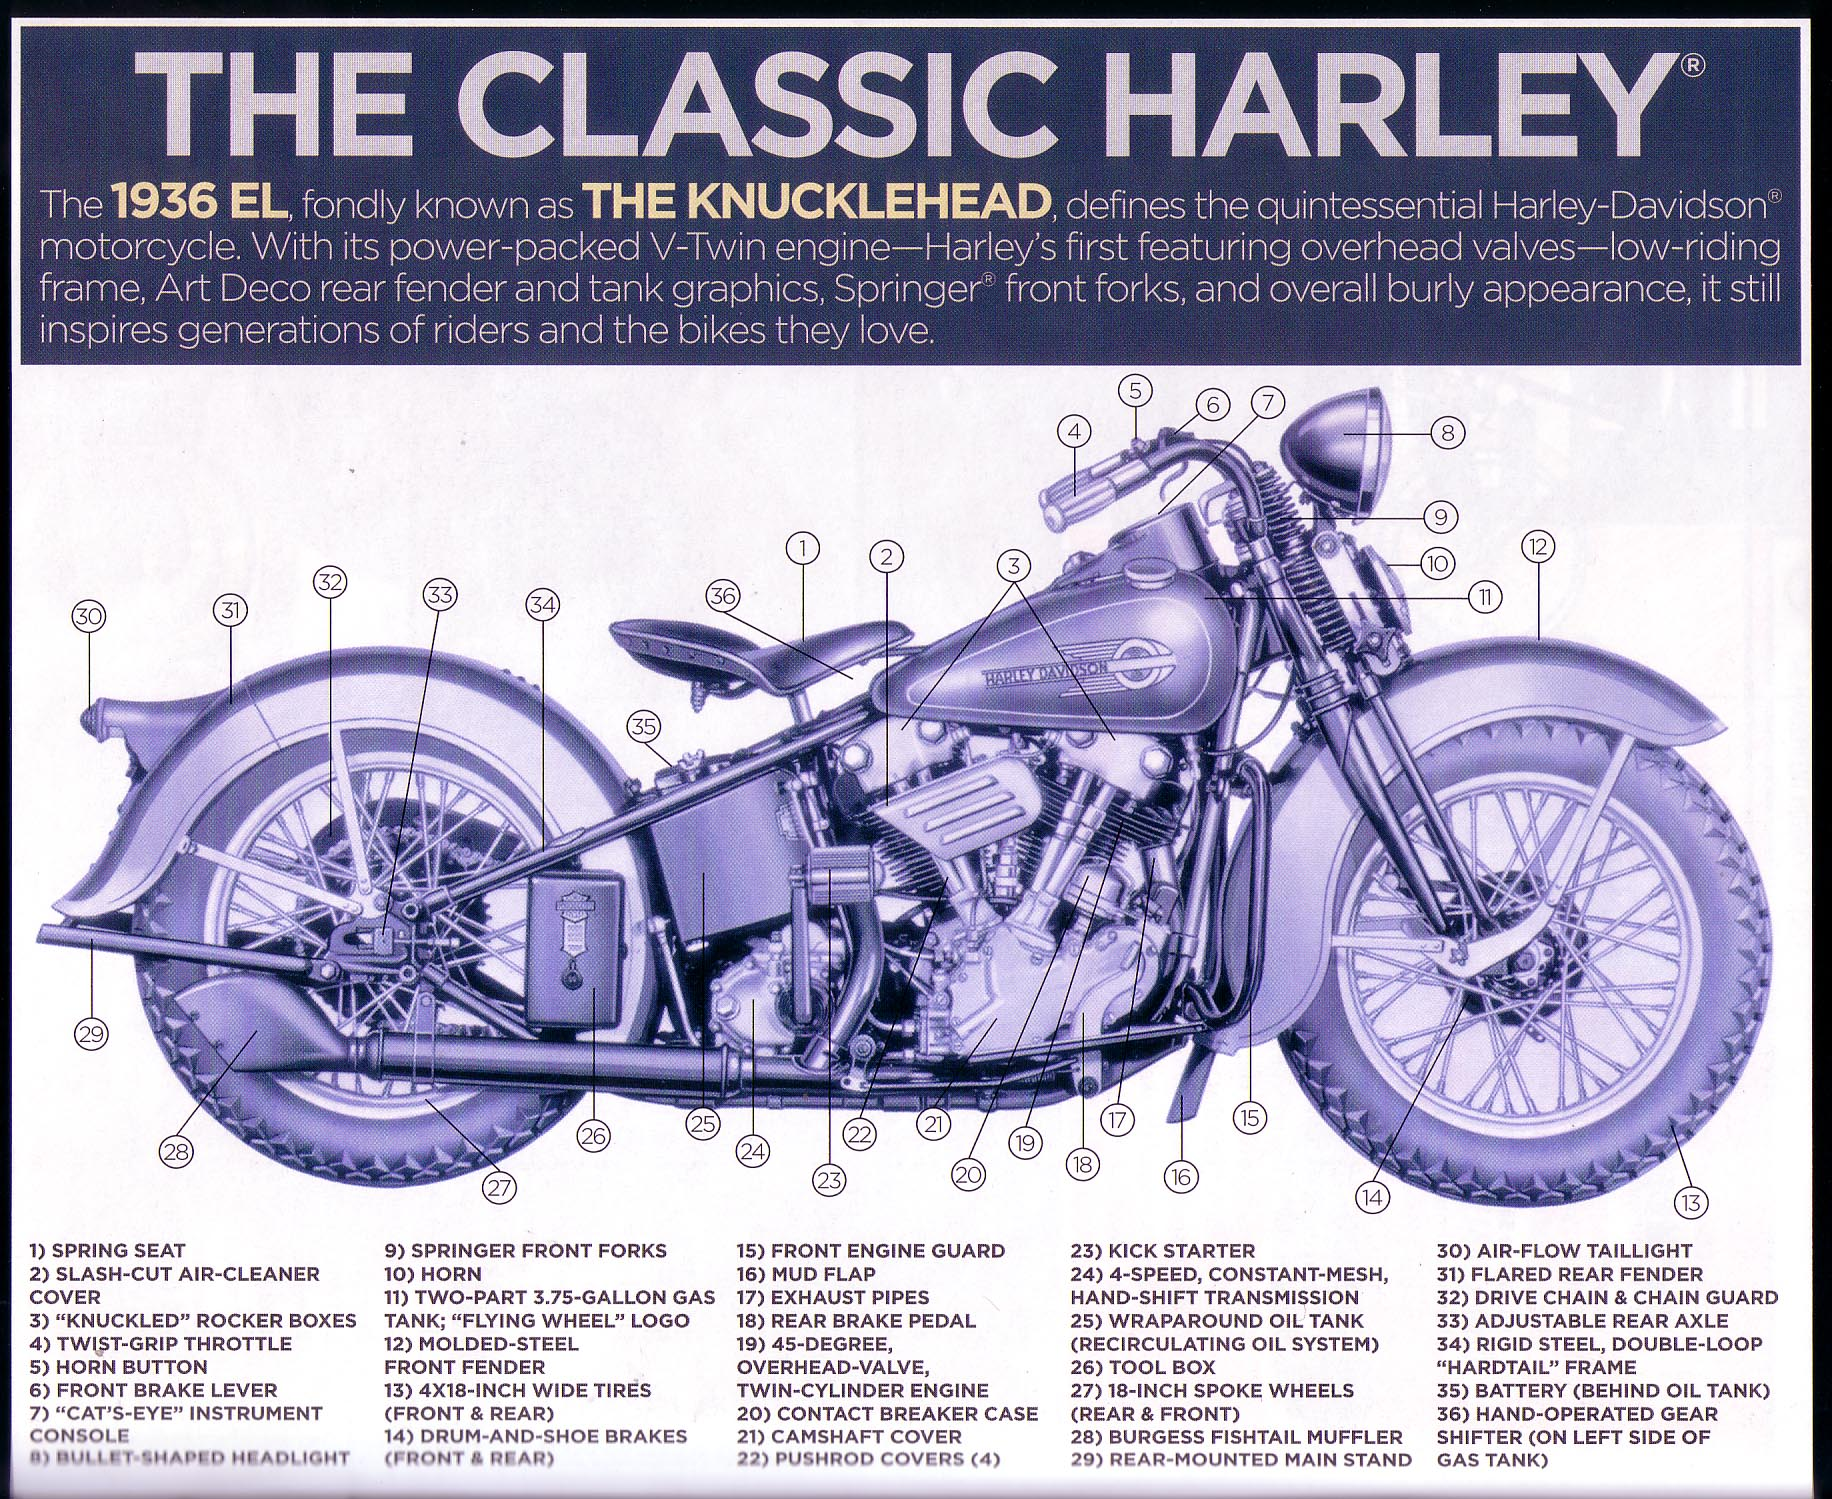 Specifications Photos Pictures Harley Davidsons Indians Motorcycles Royal Enfield Wiring Diagram For Horn Click To Zoom On Motorcycle Blueprints And